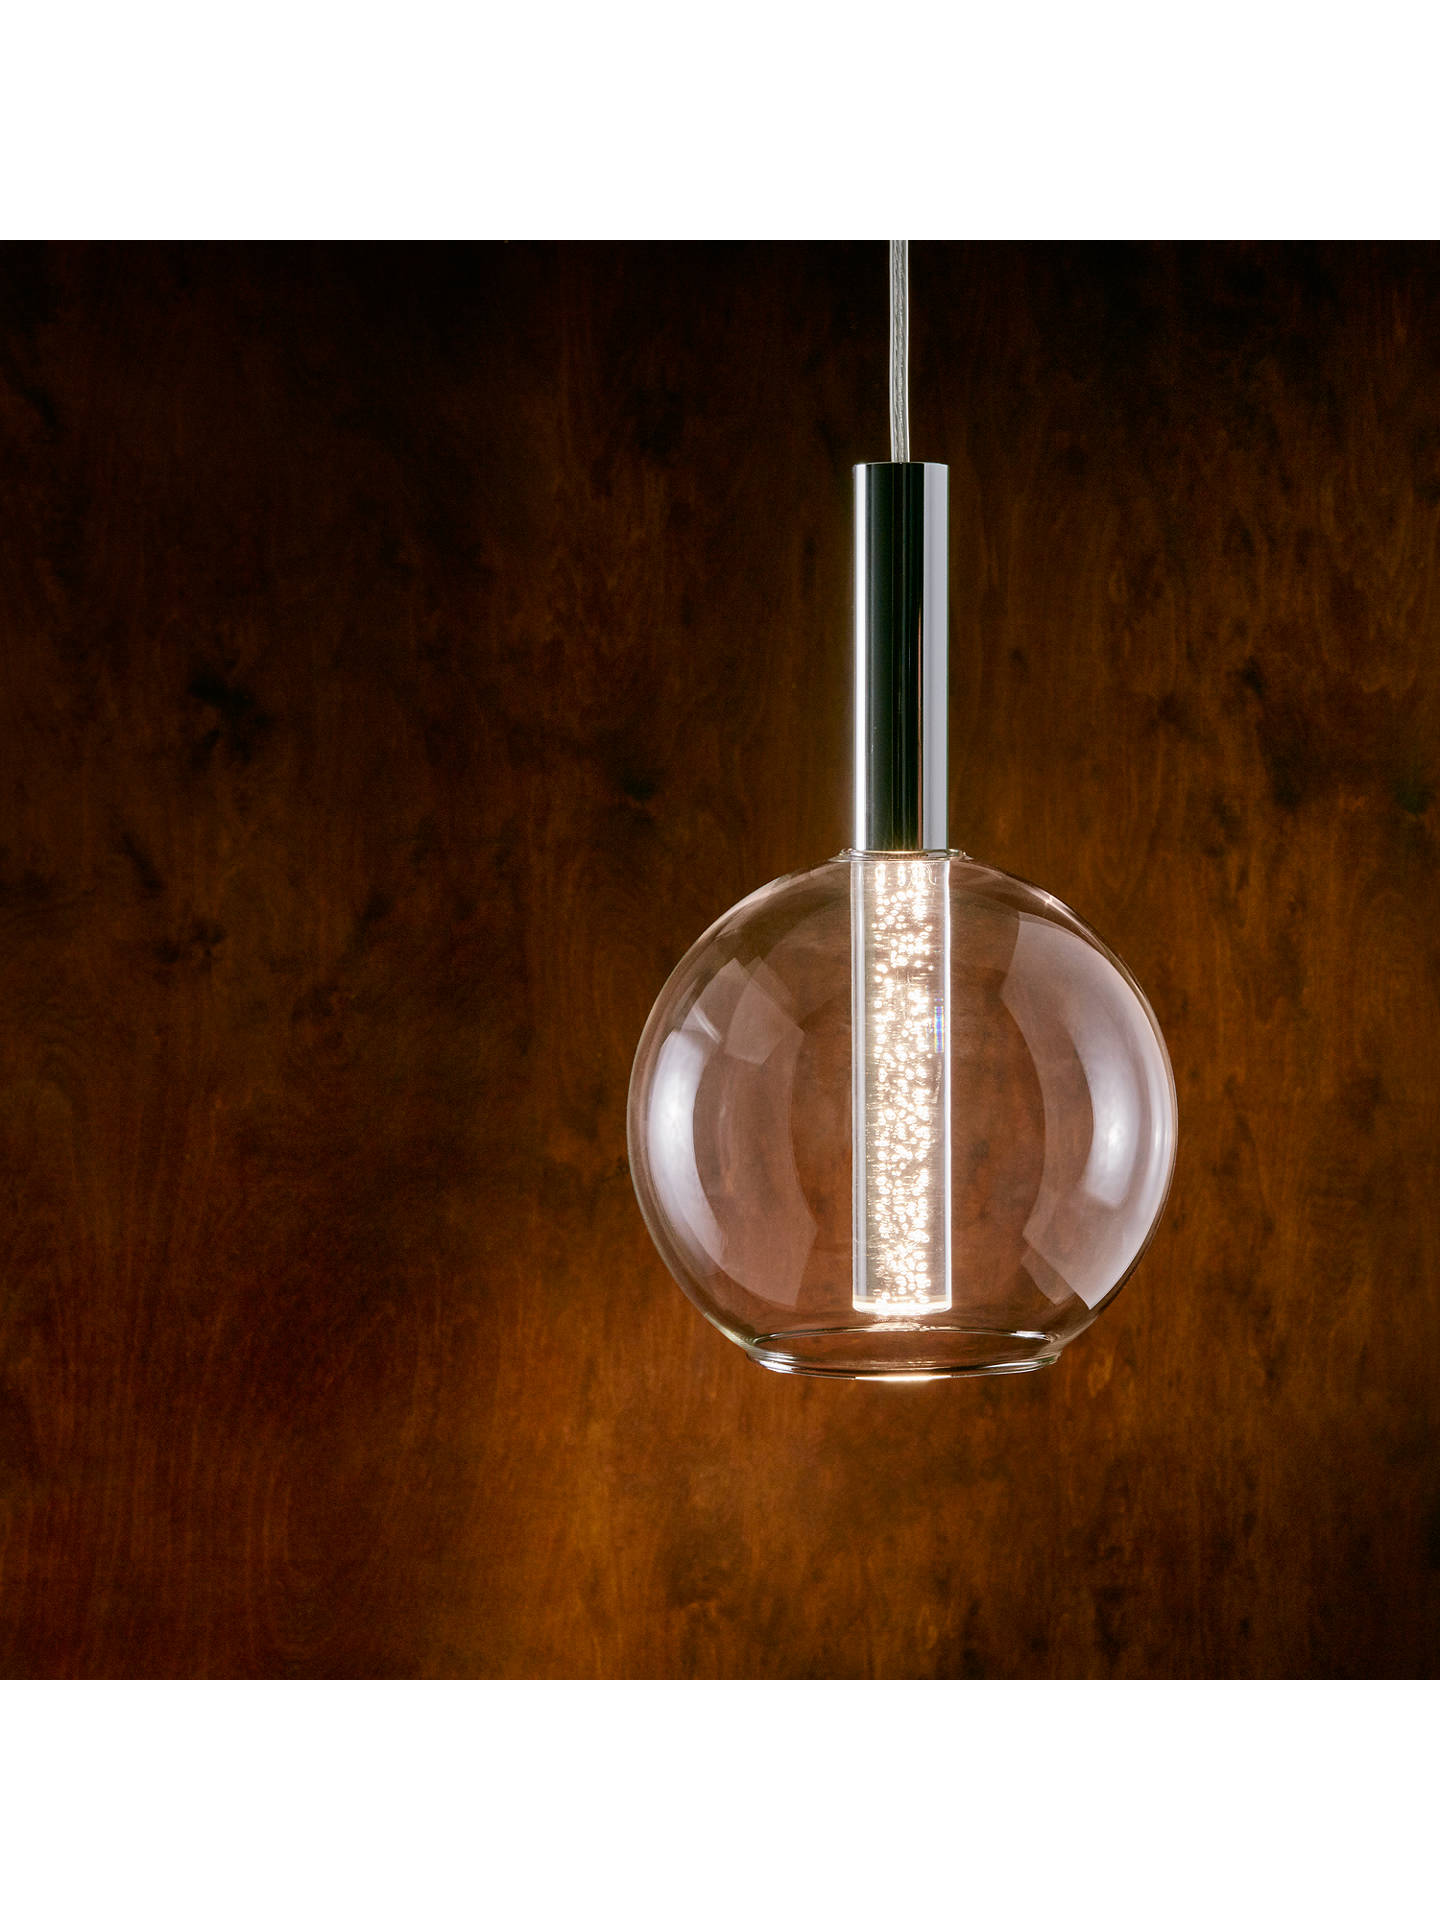 BuyJohn Lewis & Partners Orson LED Bubble Single Ceiling Light Online at johnlewis.com